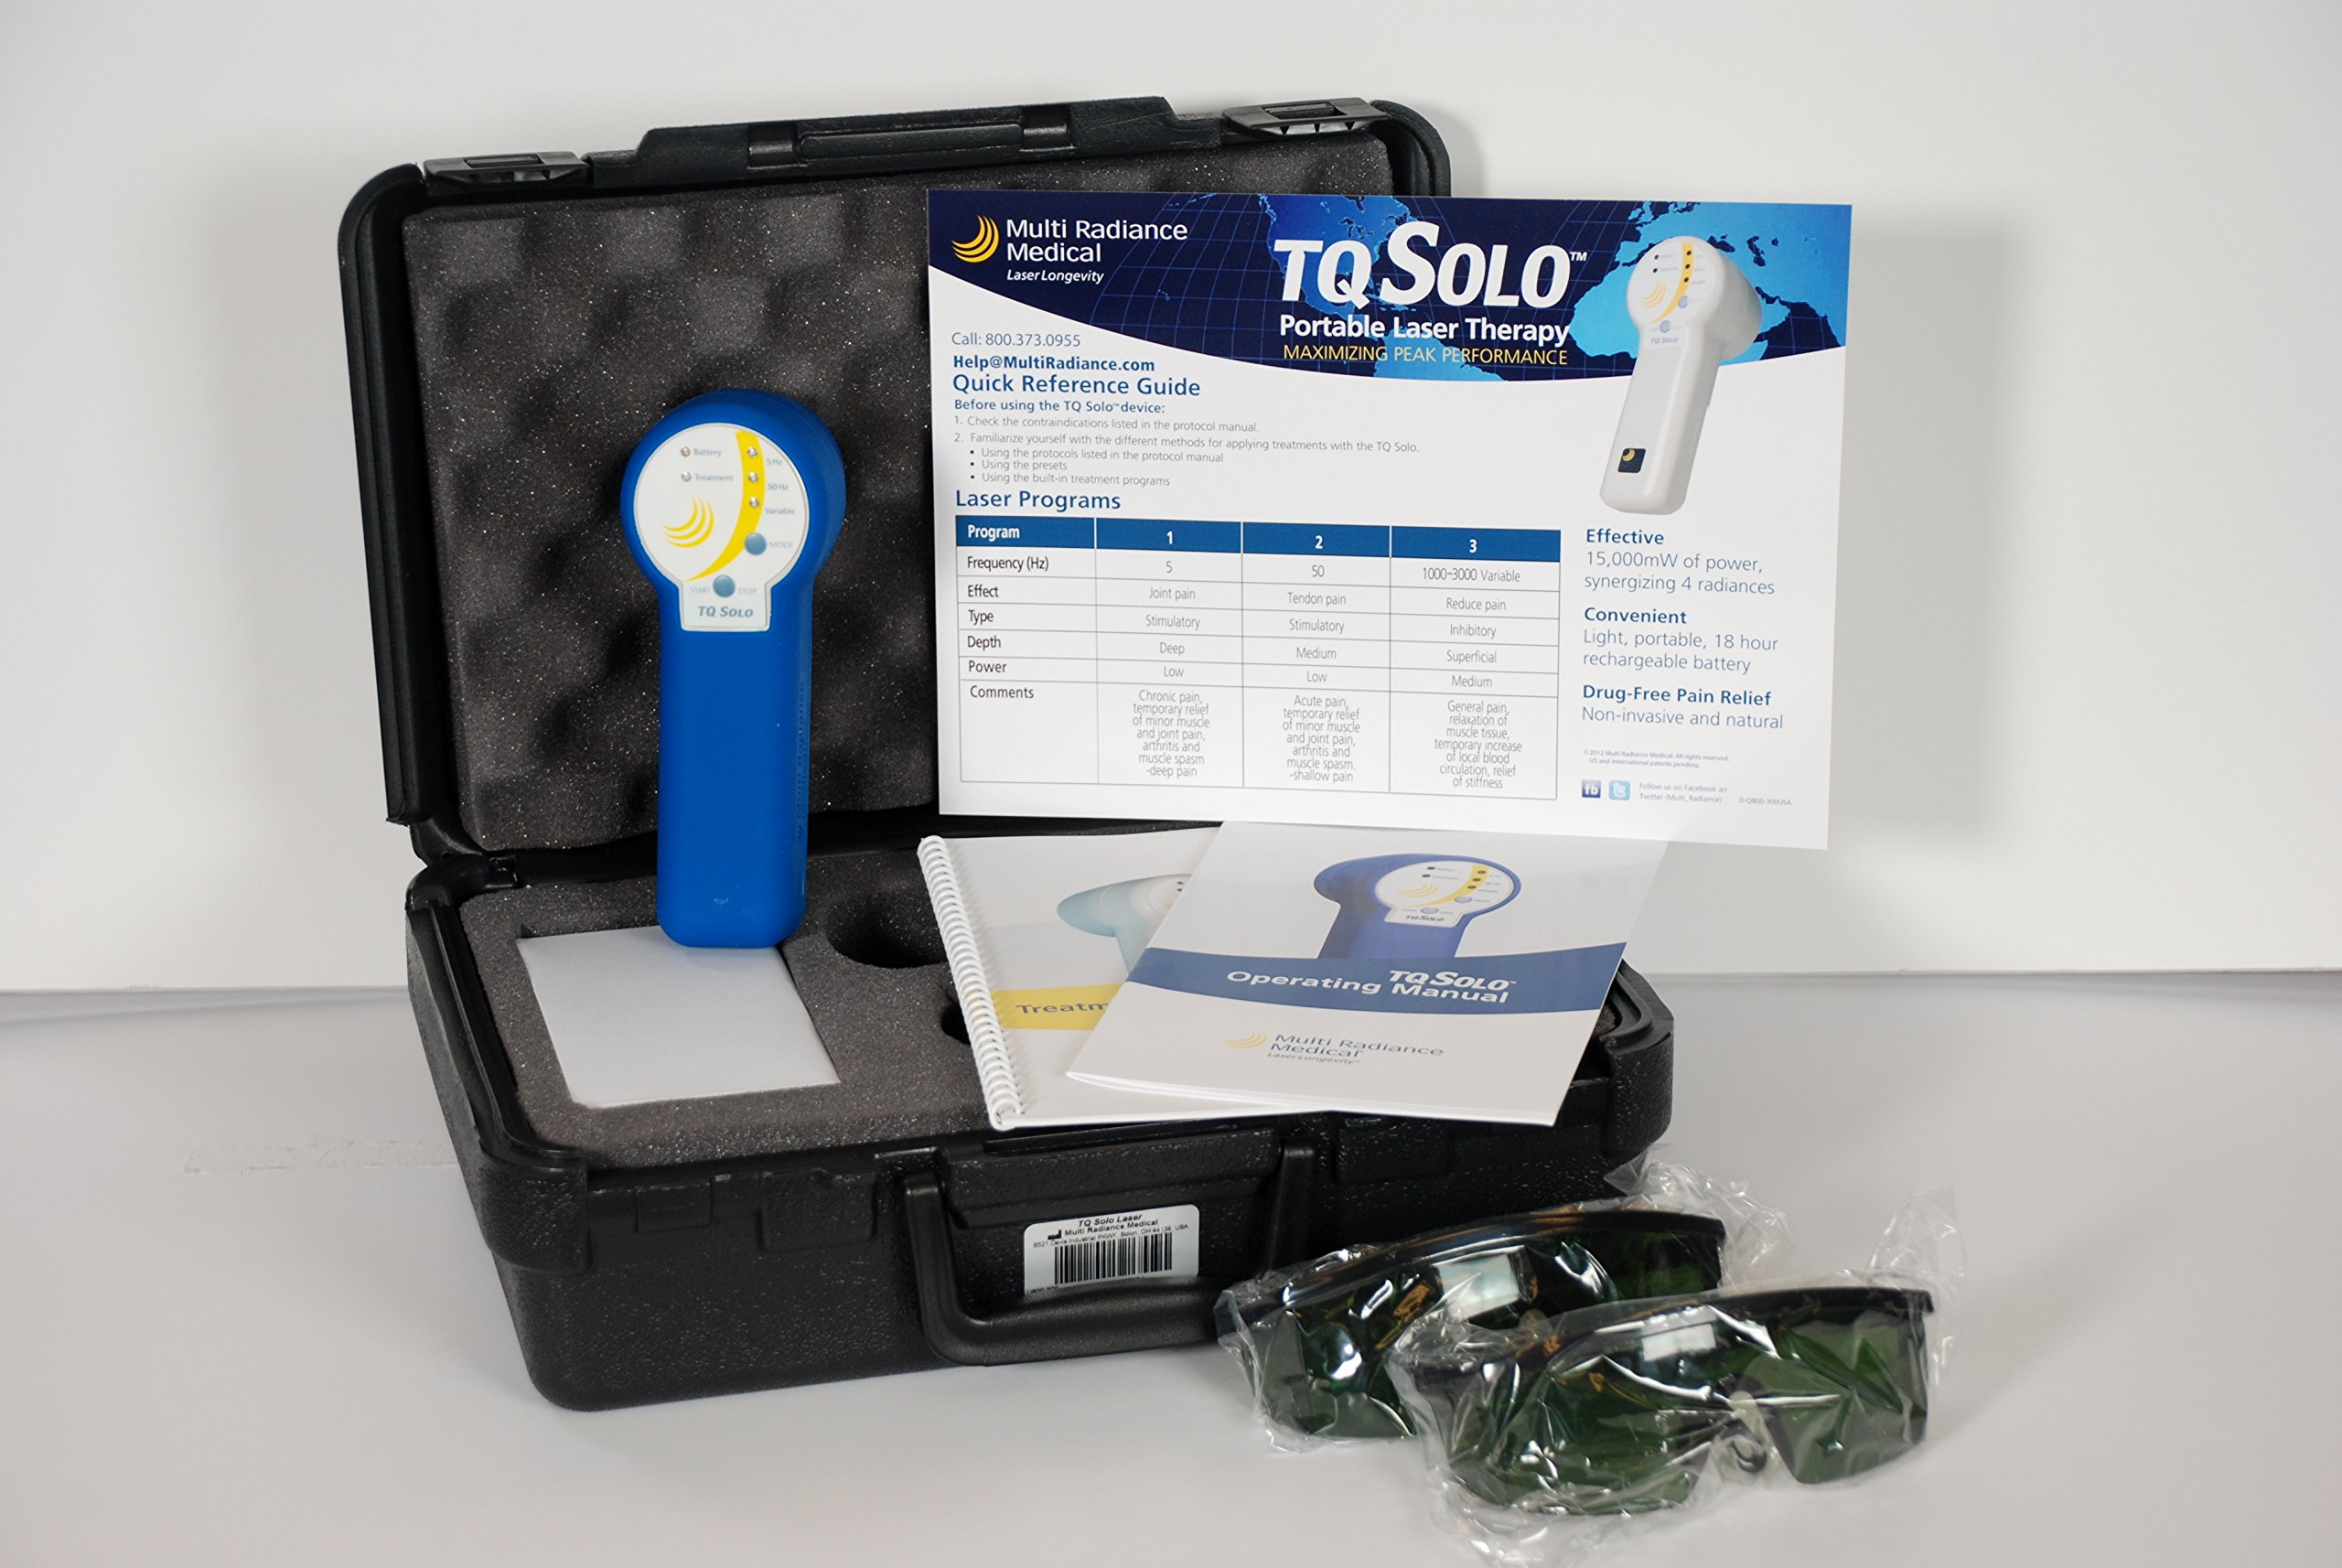 TQ Solo Portable Super Pulsed Laser Therapy - 3 wavelengths, 905nm Super Pulsed Laser, 875nm Infrared Broadband, 640nm Red - 3 pre-programmed modes for fast and easy pain relief anywhere, anytime by Multi Radiance Medical